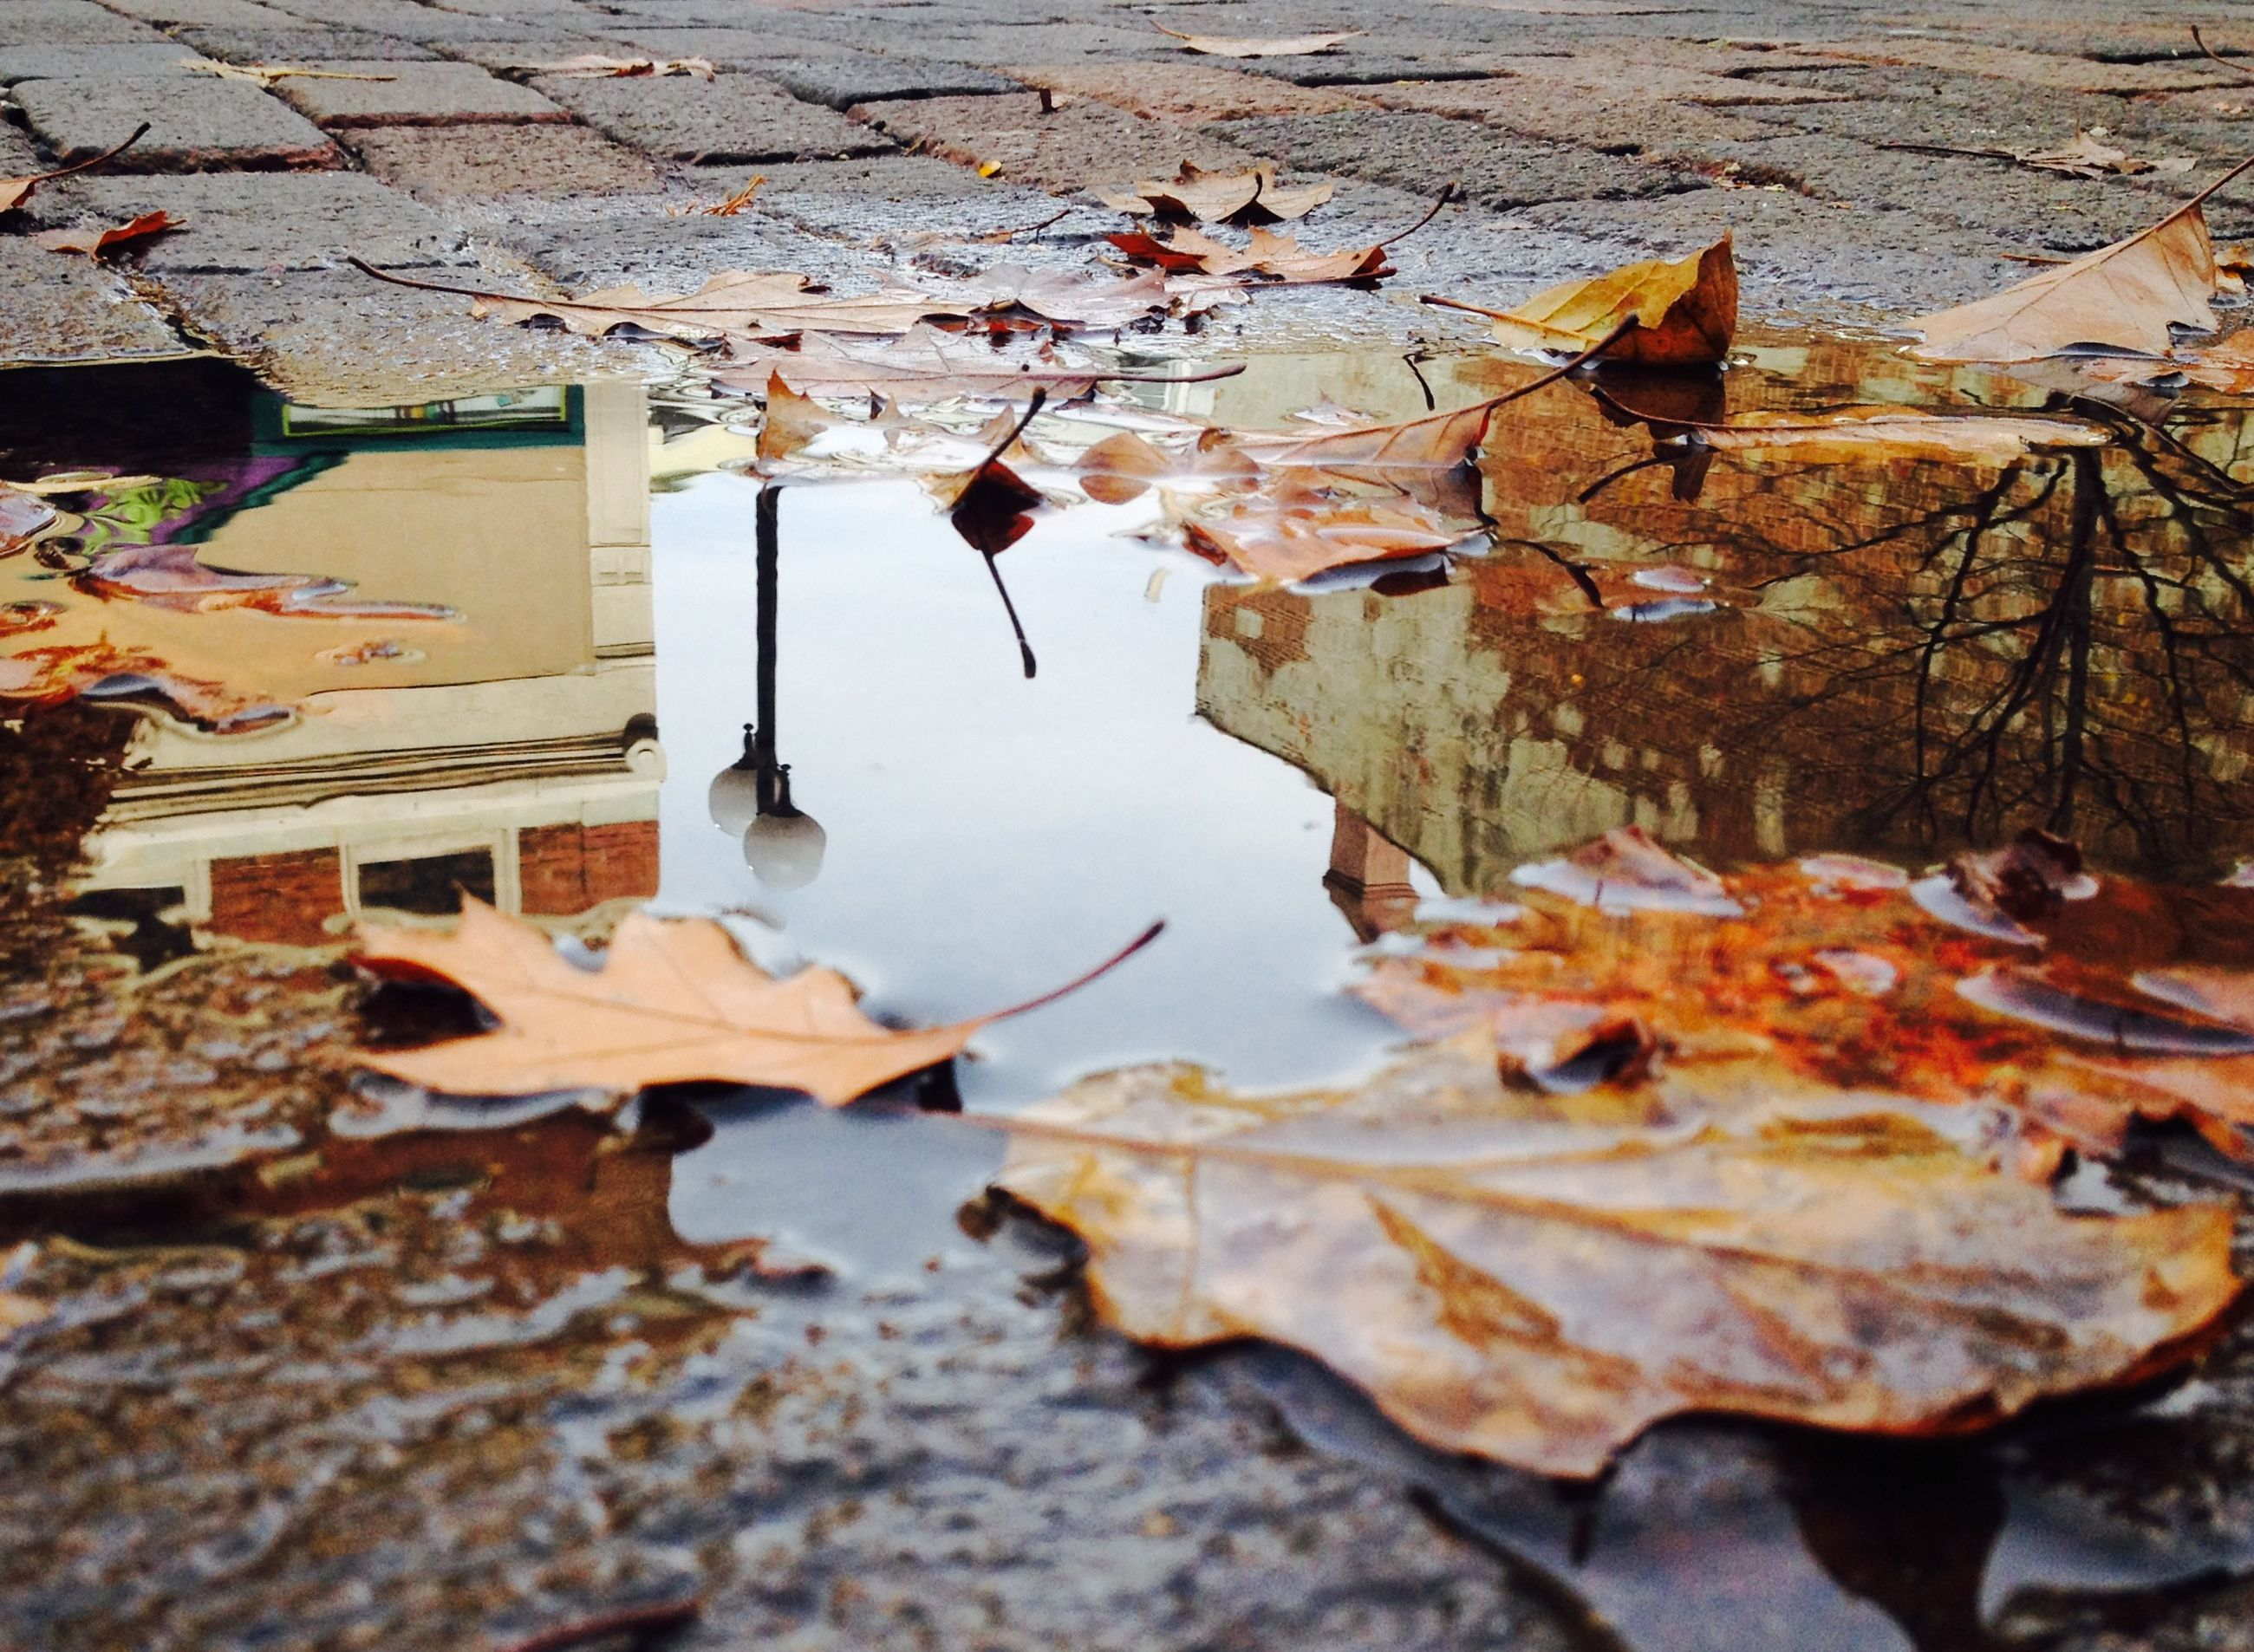 leaf, water, autumn, season, dry, change, leaves, fallen, reflection, day, built structure, nature, puddle, high angle view, outdoors, messy, no people, building exterior, architecture, rock - object